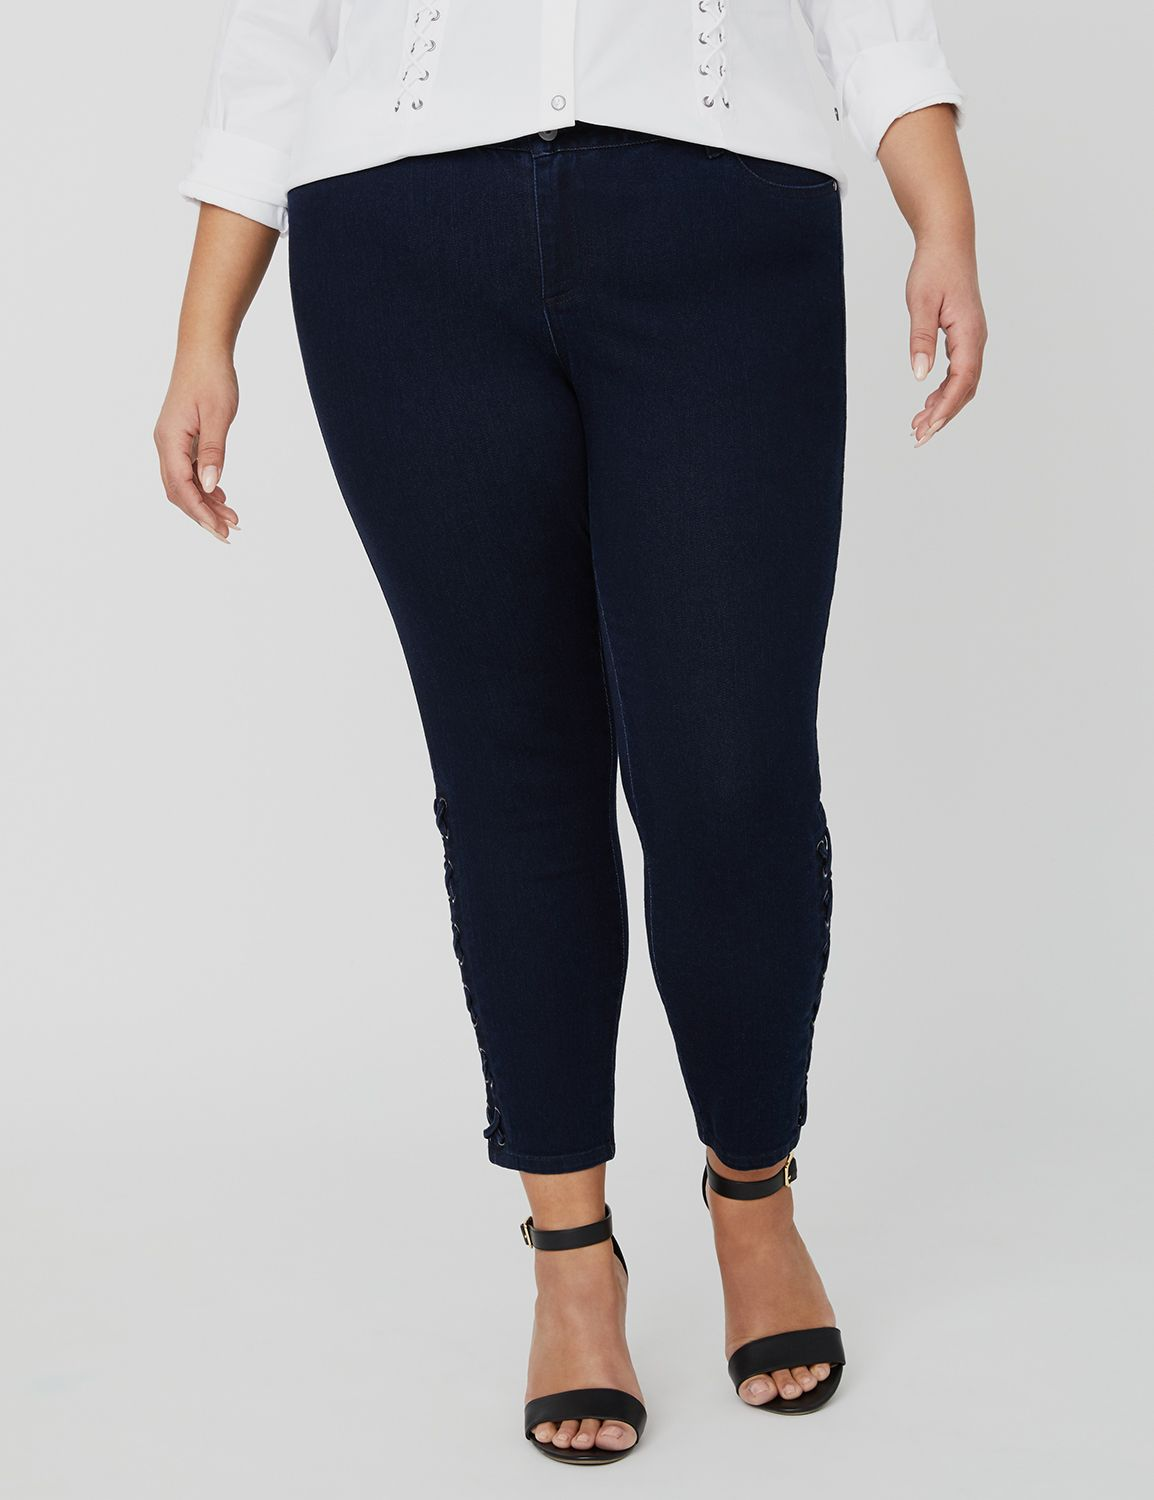 Curvy Collection Lace-Up Jean 1088607 Curvy Collection Sateen (11 MP-300099466